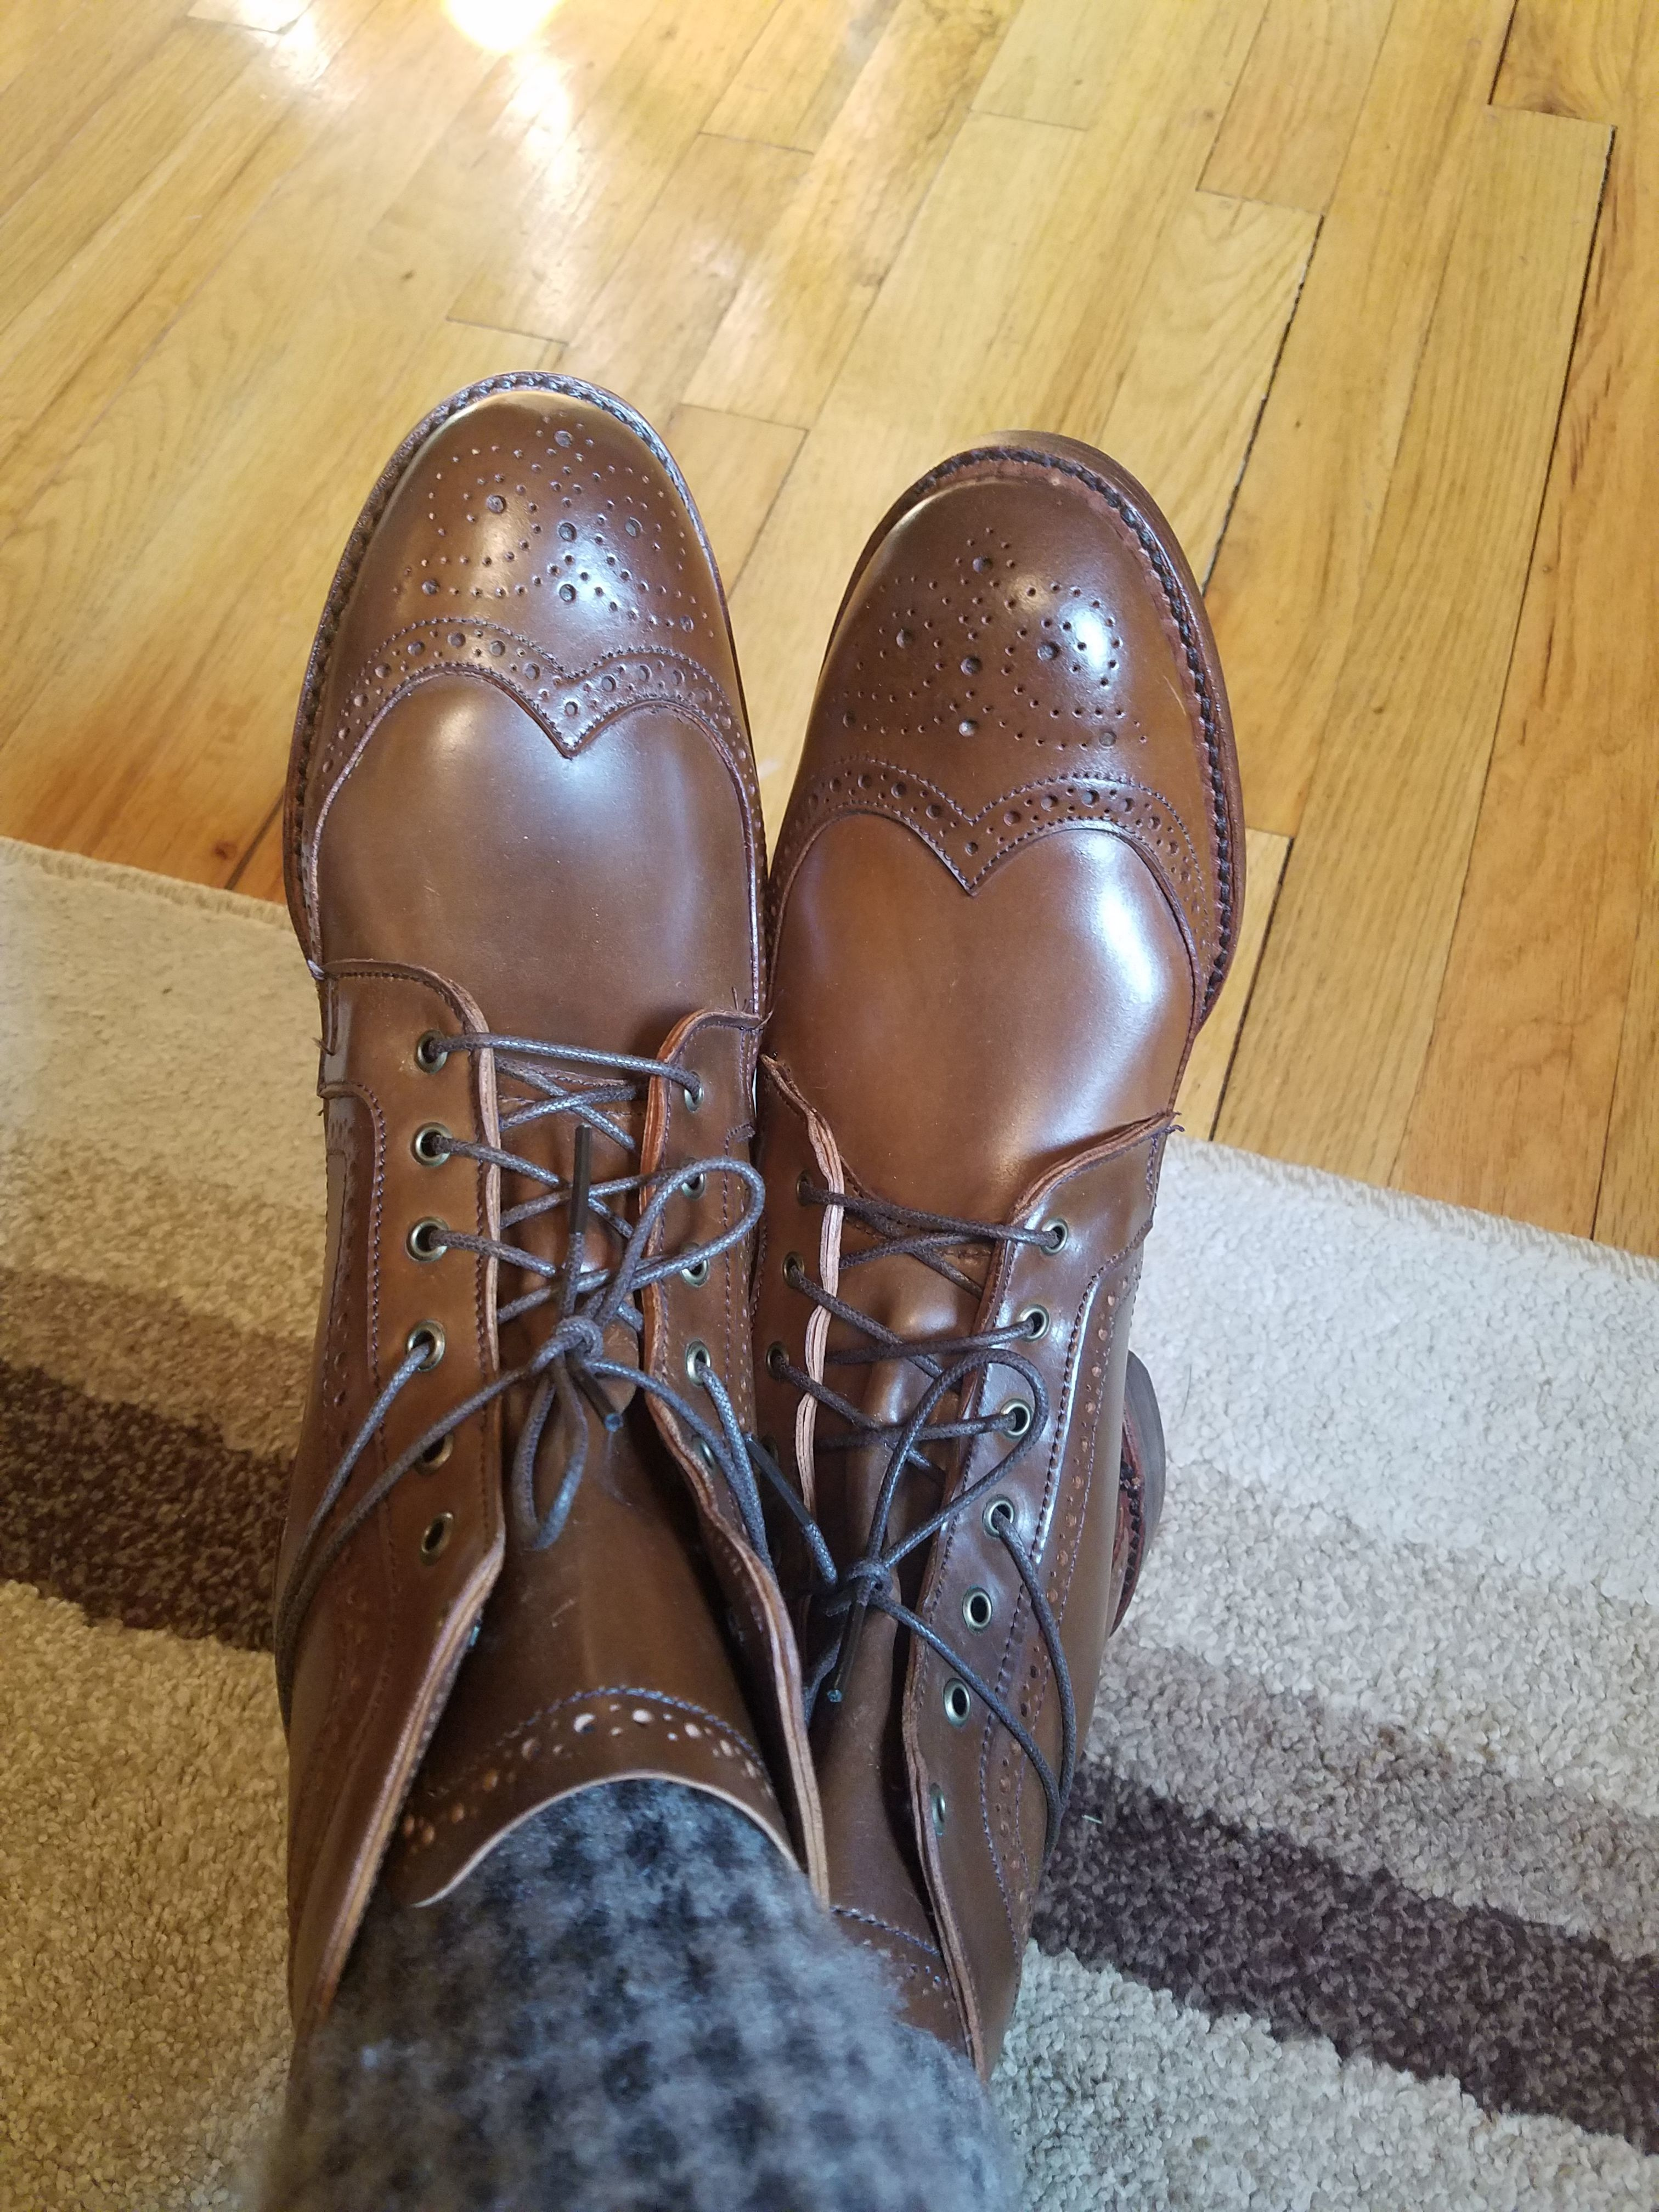 Shawnc's photos in Allen Edmonds Appreciation Thread 2016 - News, Pictures, Sizing, Accessories, Clothing, etc